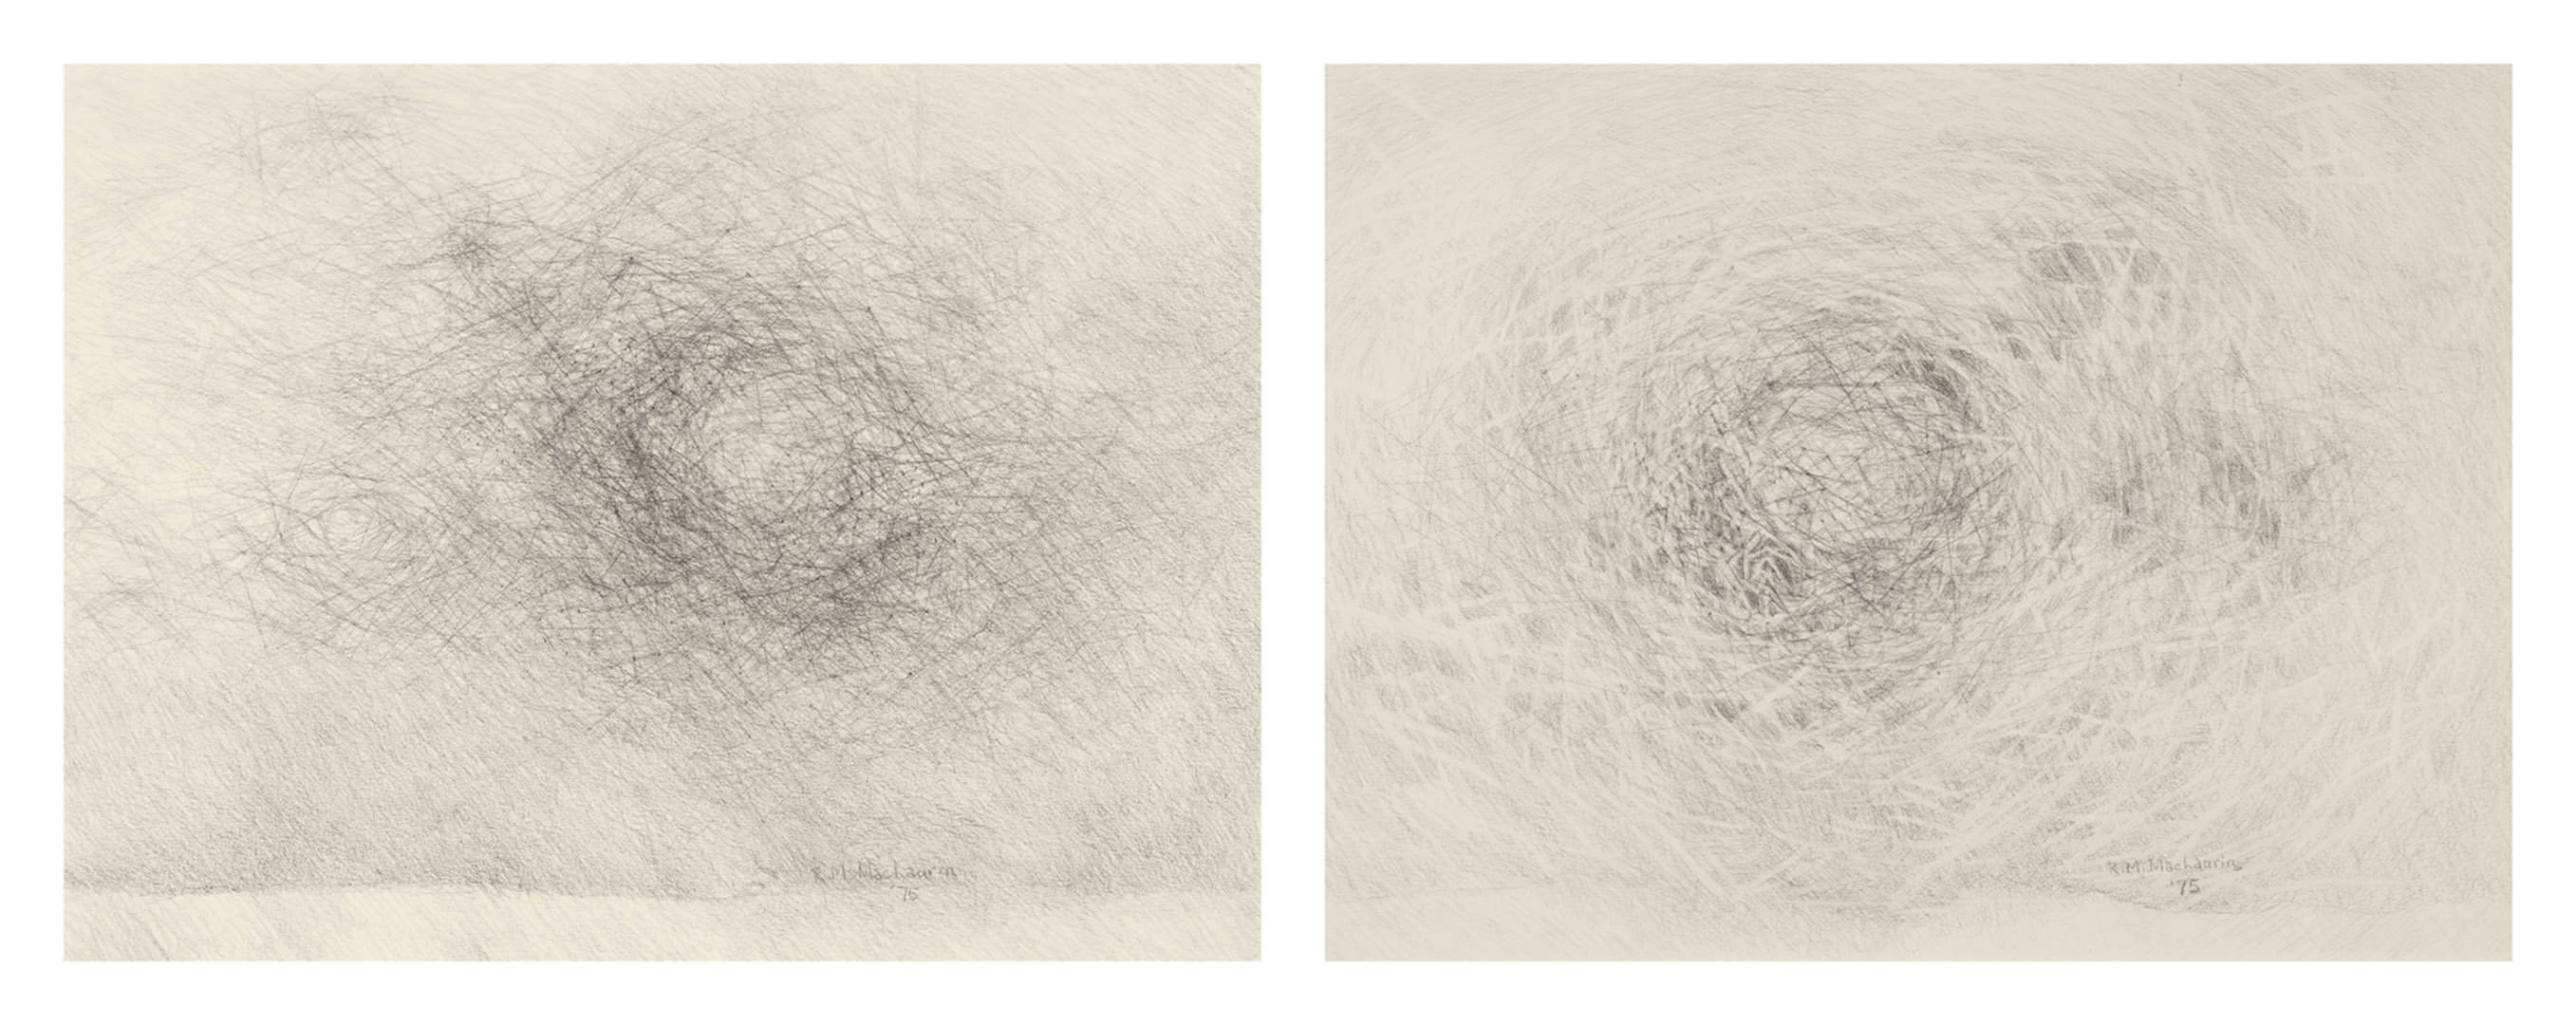 Prairie Windscape (1975) & Sky Space (1975) Ruth MacLaurin (1942 - ) Graphite sur papier Collection : Banque d'art du Conseil des arts du Canada